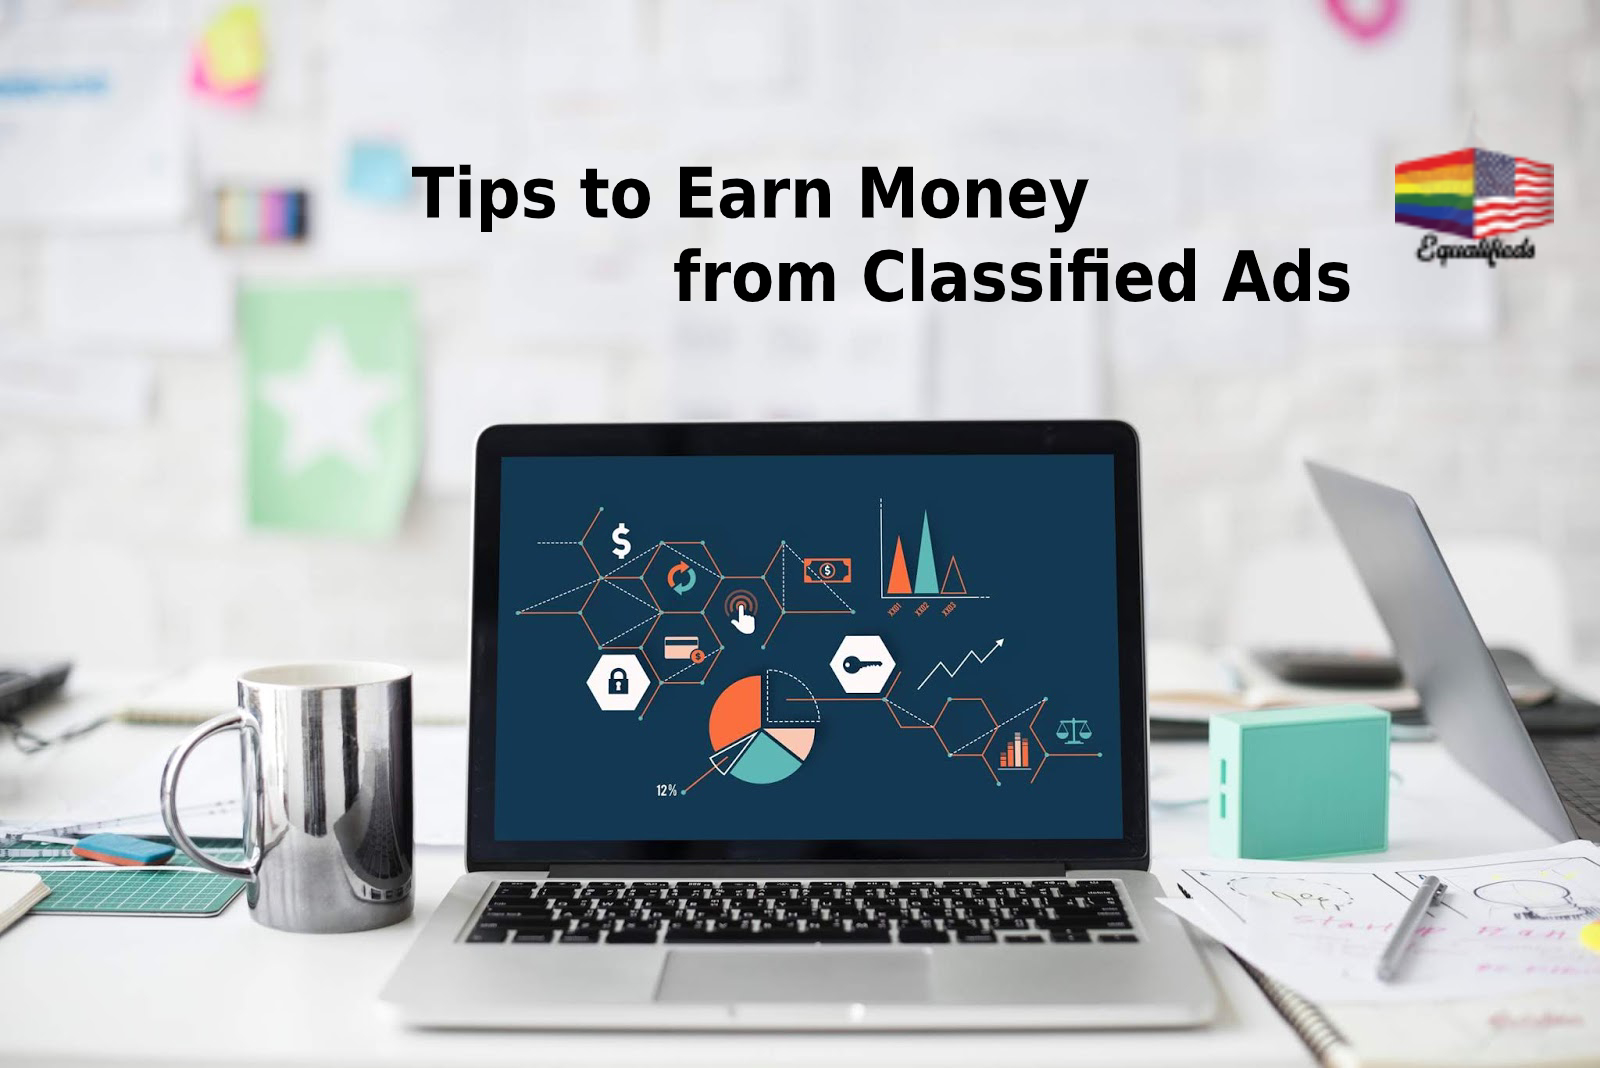 Tips to Earn Money from Classified Ads